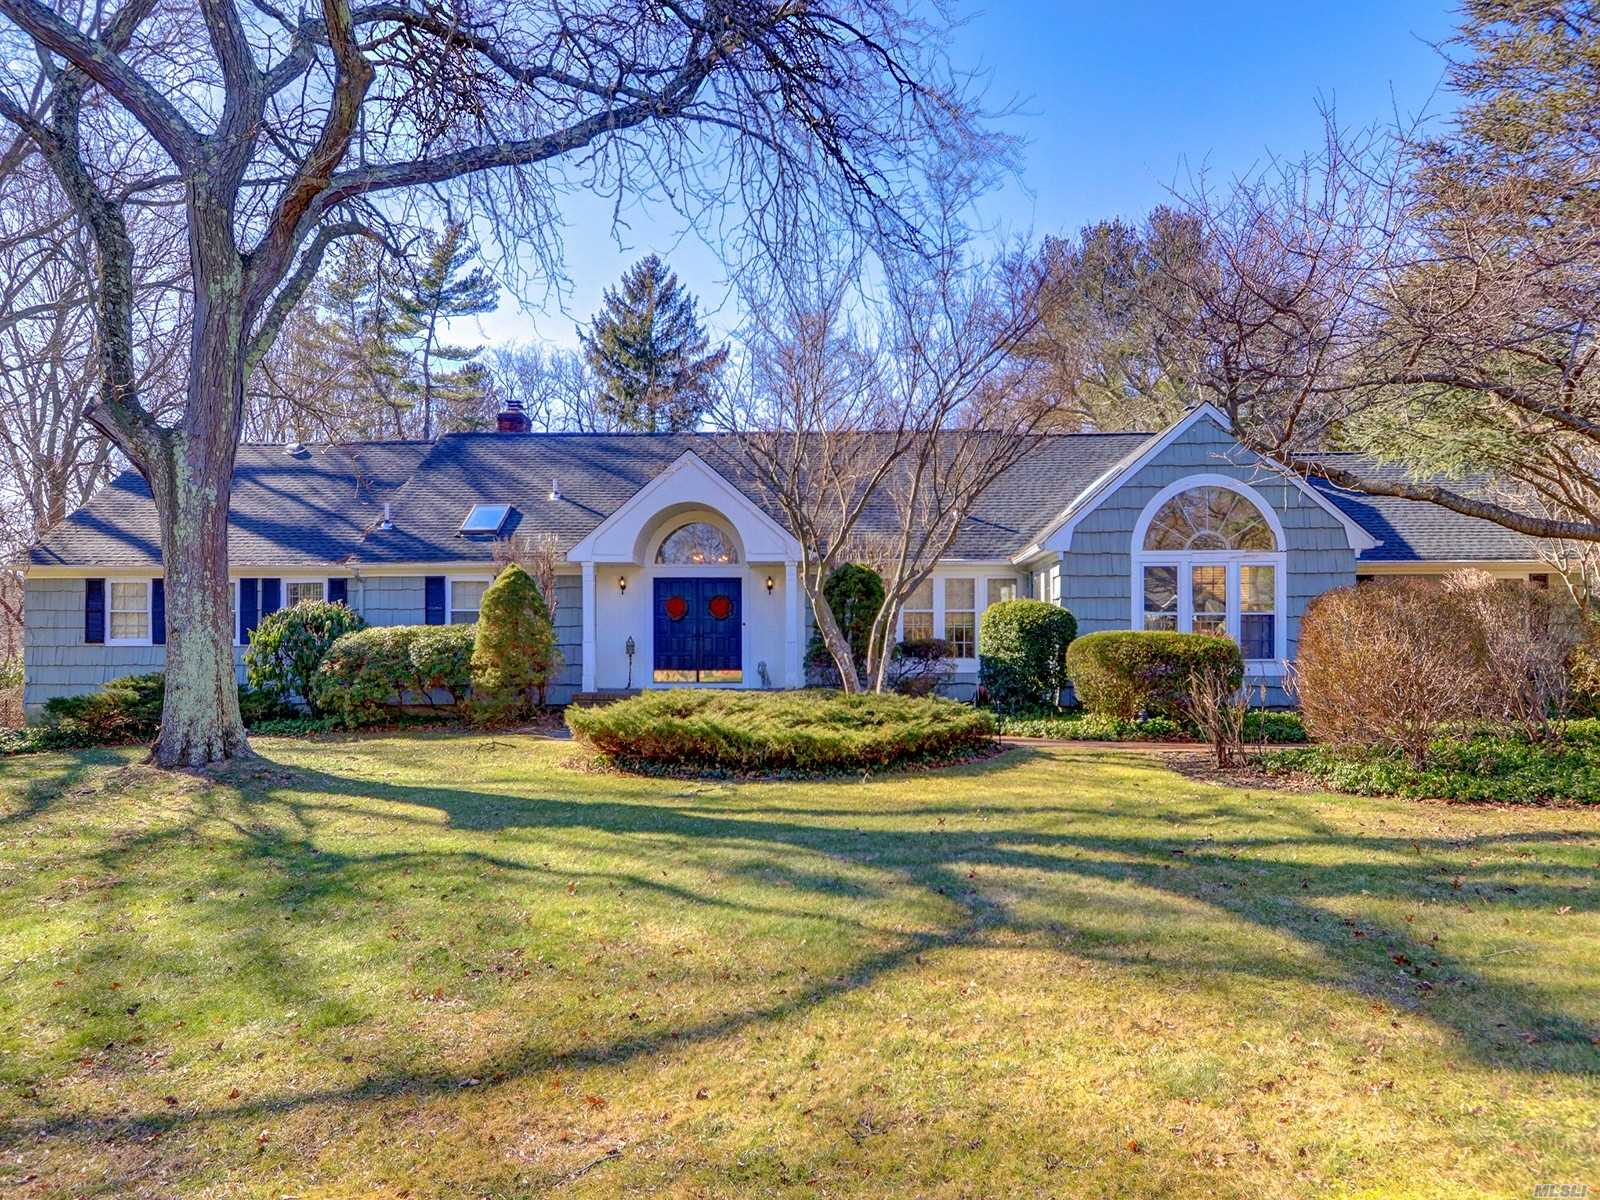 Rare Chance To Make This 4, 000+Sqft Farm Ranch. One Of The Most Desirable Blocks Of Huntington Bay Your Own! Deeded Nathan Hale Beach Rights. Bay Club Around Block. Open Layout Is Ideal For Entertaining! Possible 7 Bedrooms. New Dark Oak Floors Throughout. New Roof. Freshly Painted W/ Gorgeous Custom Molding Throughout. 2 Fireplaces. Cac. Hi Hat Lighting Throughout. Master En Suite. Private Guest Qrtrs. W/ Updated Bath+Sitting Room + Tons Of Storage. Basement W/Ose & Tons Of Potential & Storage!